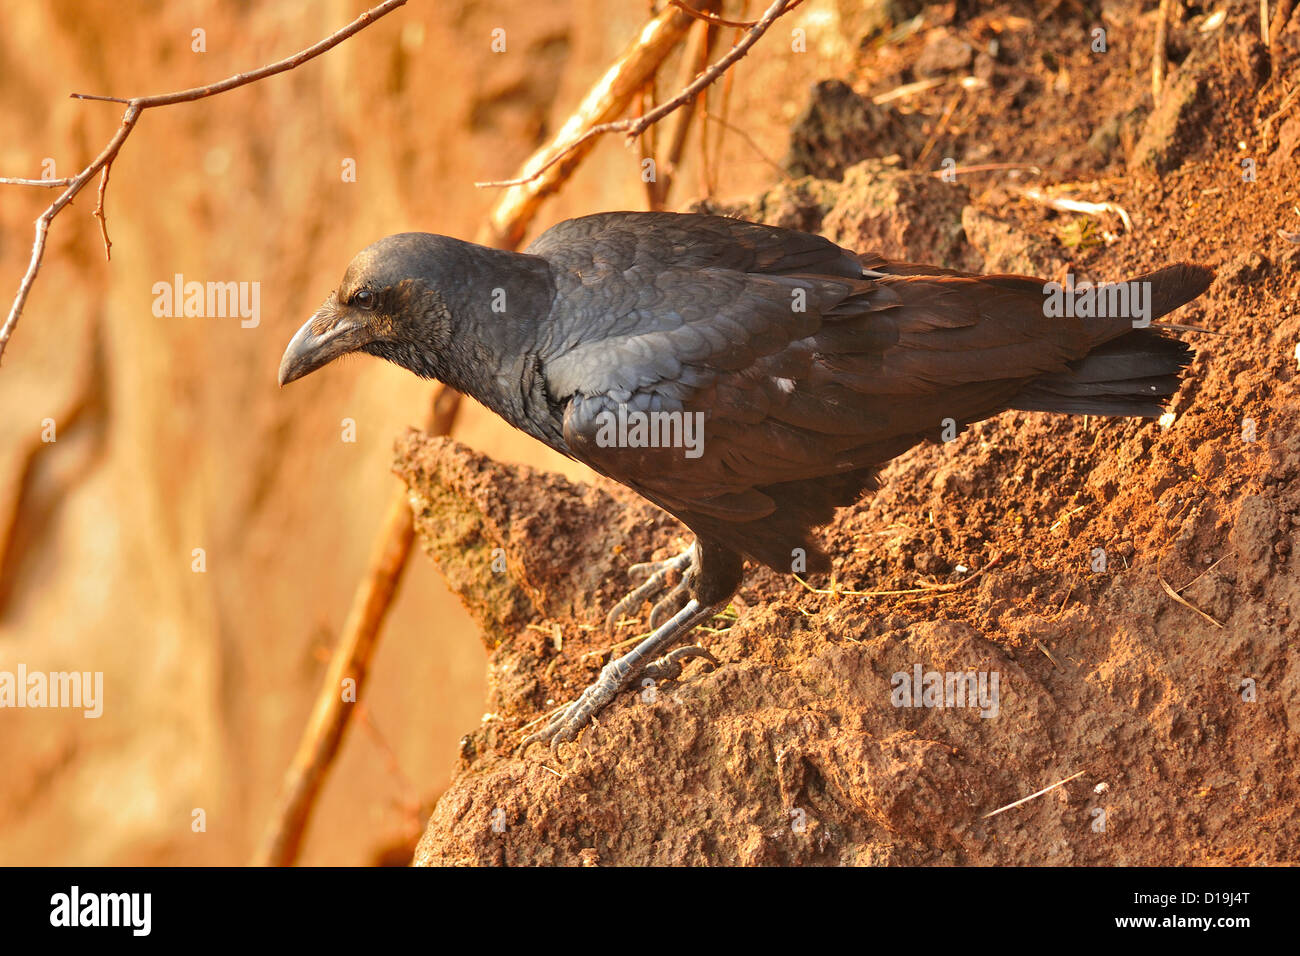 Fan-talied ripidurus Raven Corvus, corvidés, Parc National de Nechisar, Arna Minch, poèmes Etiopia, Afrique Photo Stock